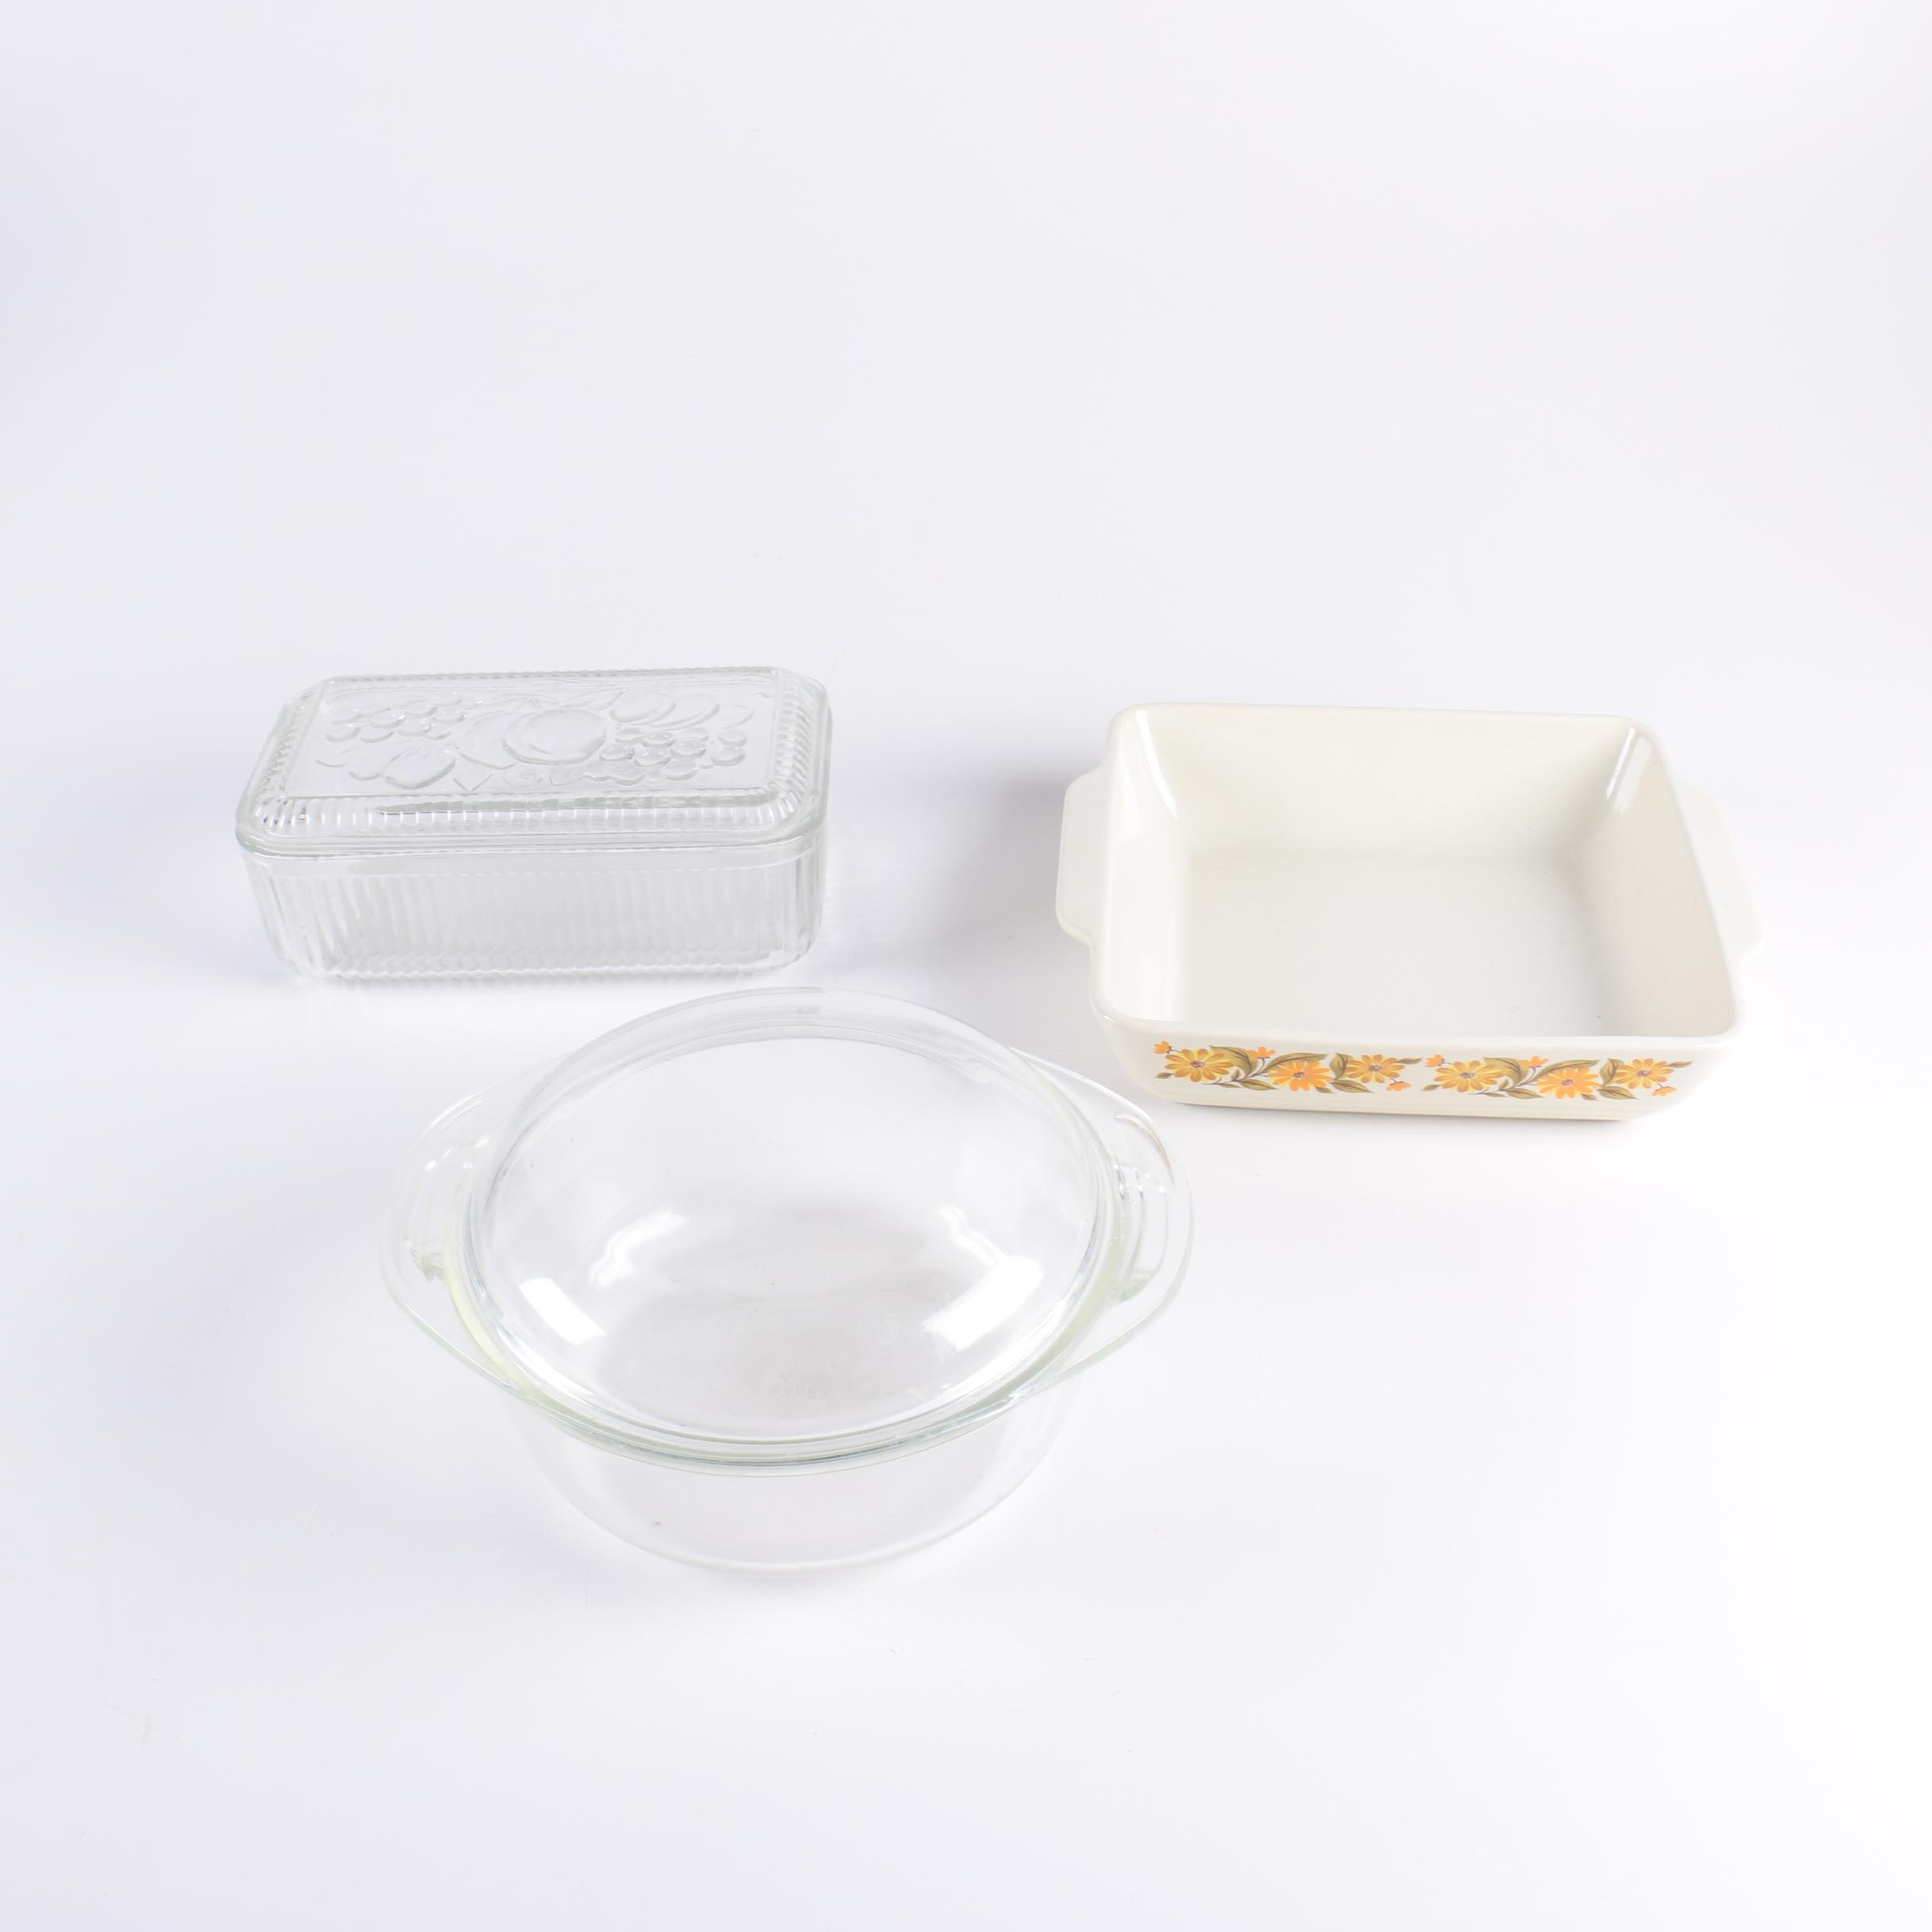 Pyrex and Other Baking Dishes